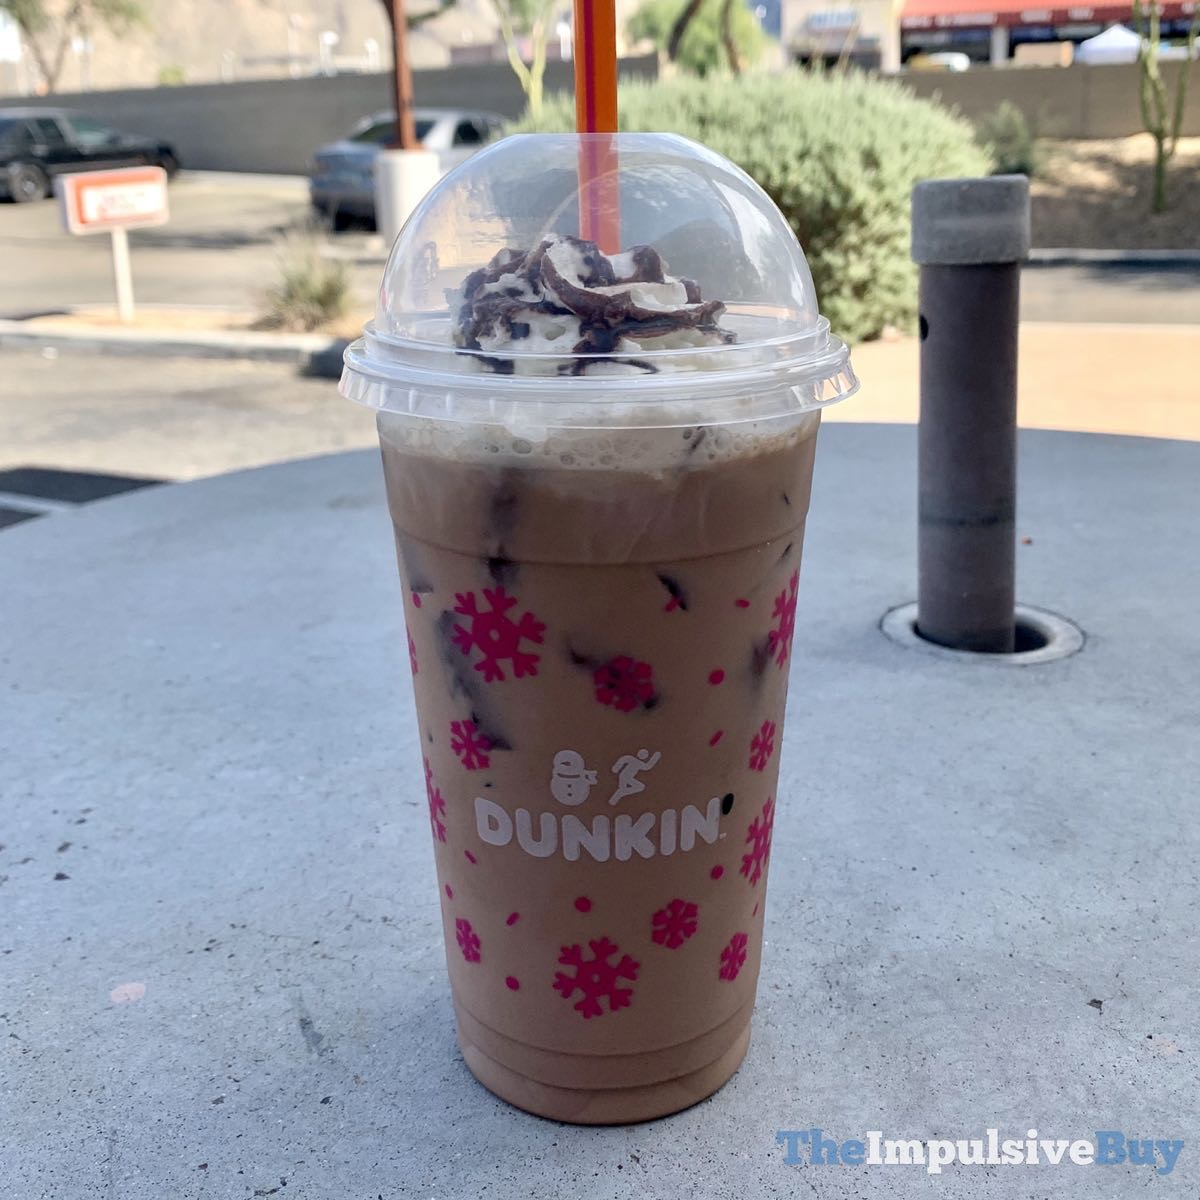 Dunkin Donuts Blueberry Crisp Iced Coffee Nutrition Facts